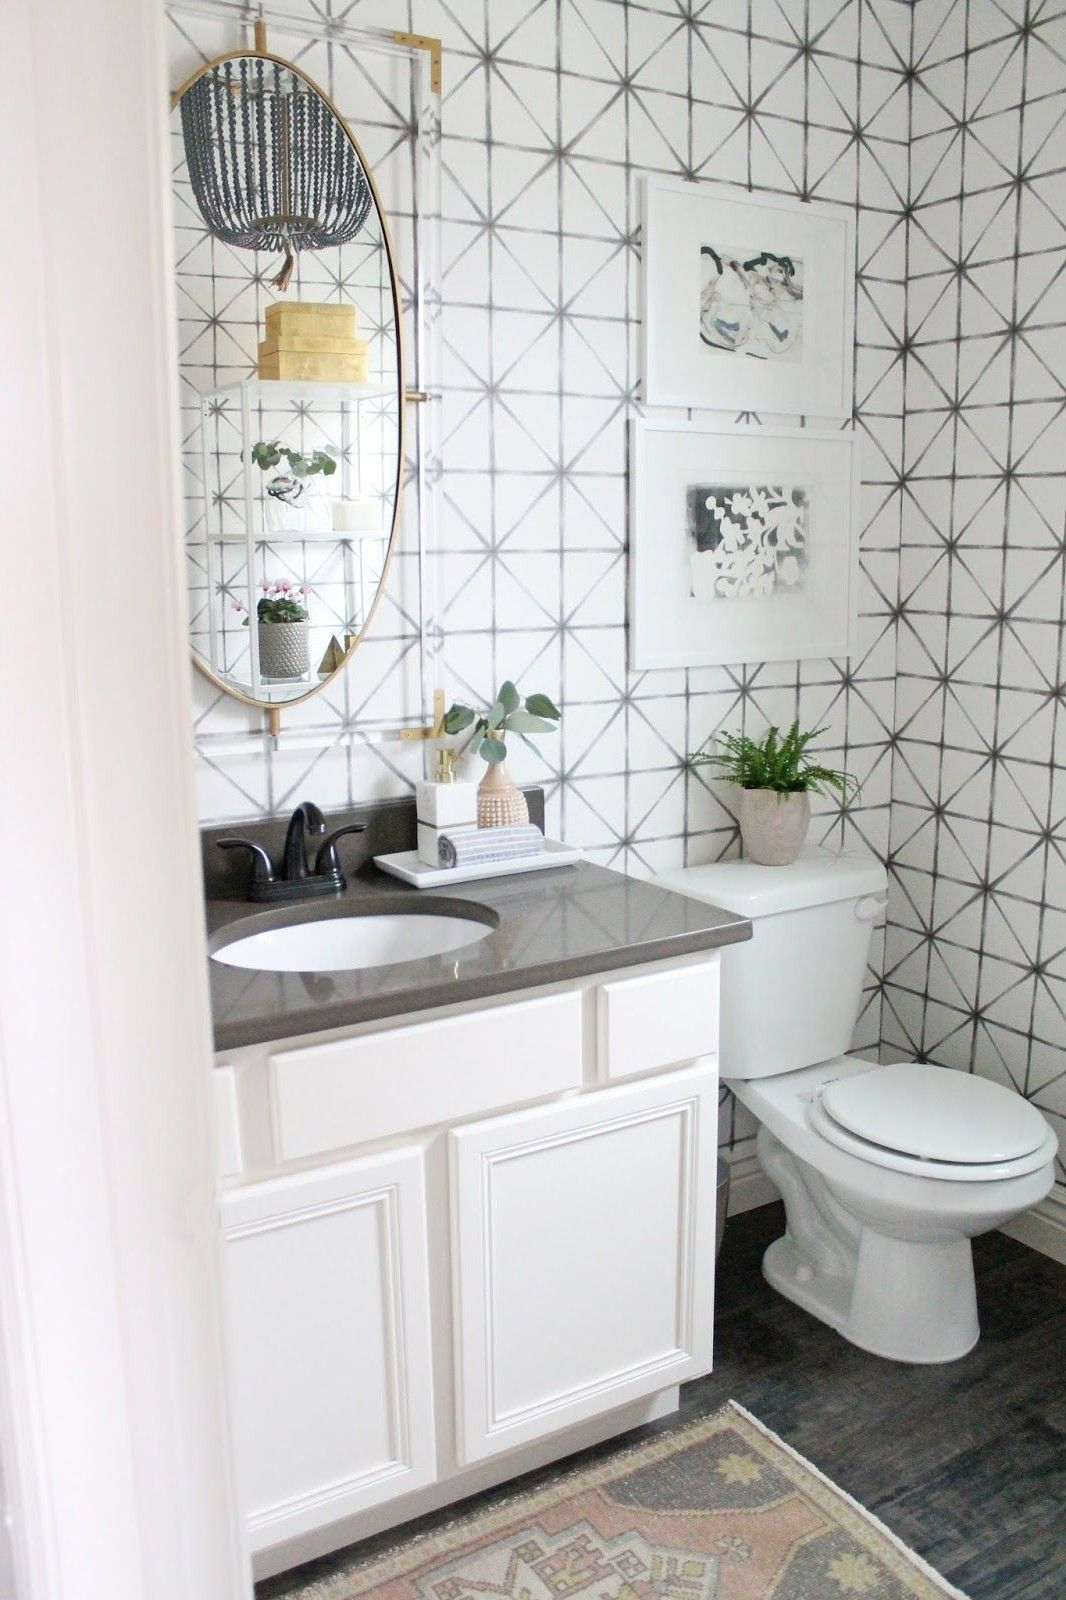 40 Stunning Powder Room Ideas To Decorate Your Dream Bathroom